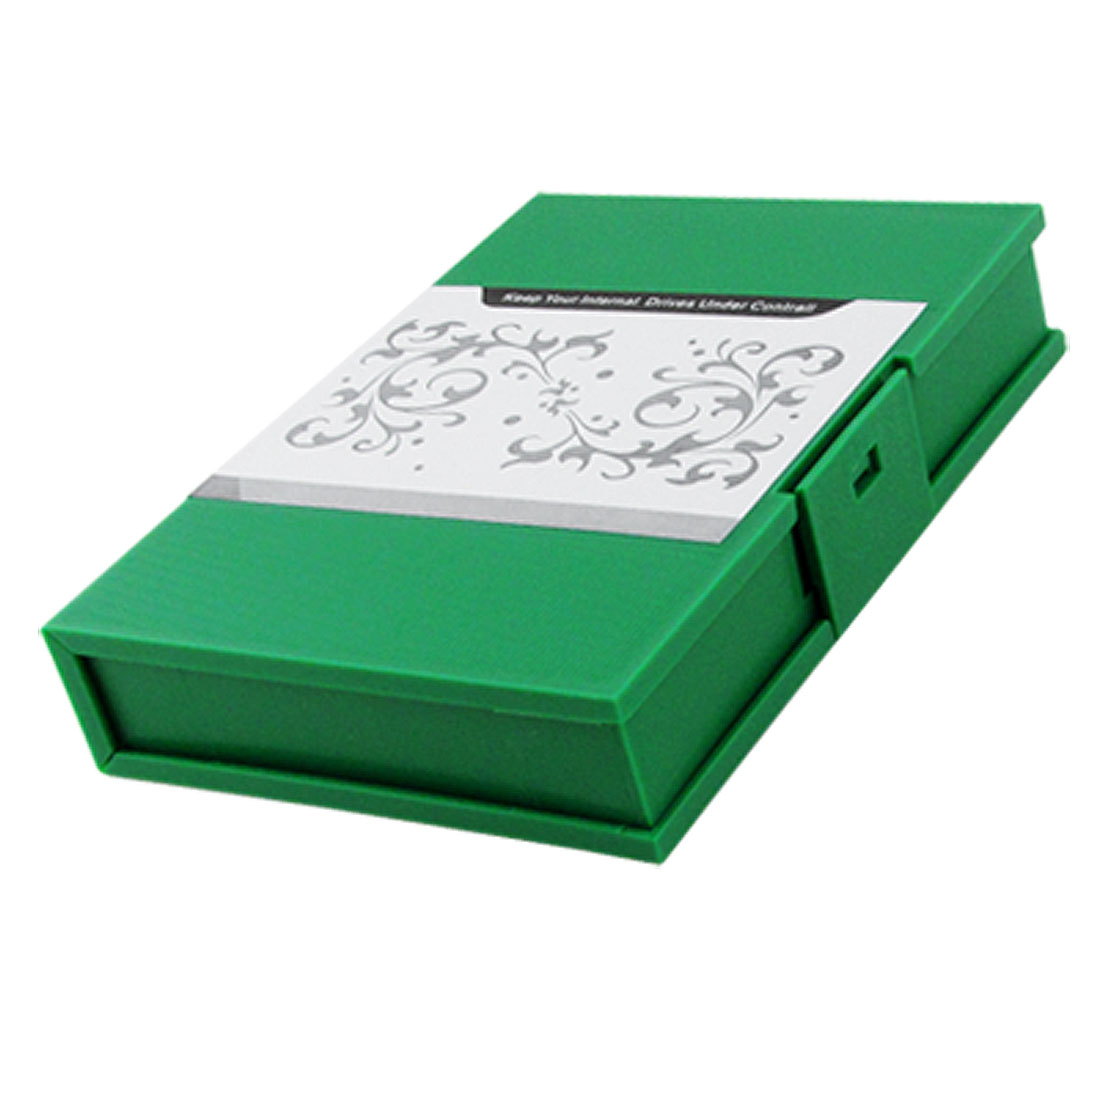 "3.5"" HDD External Enclosure Rectangular Hard Plastic Case Green"